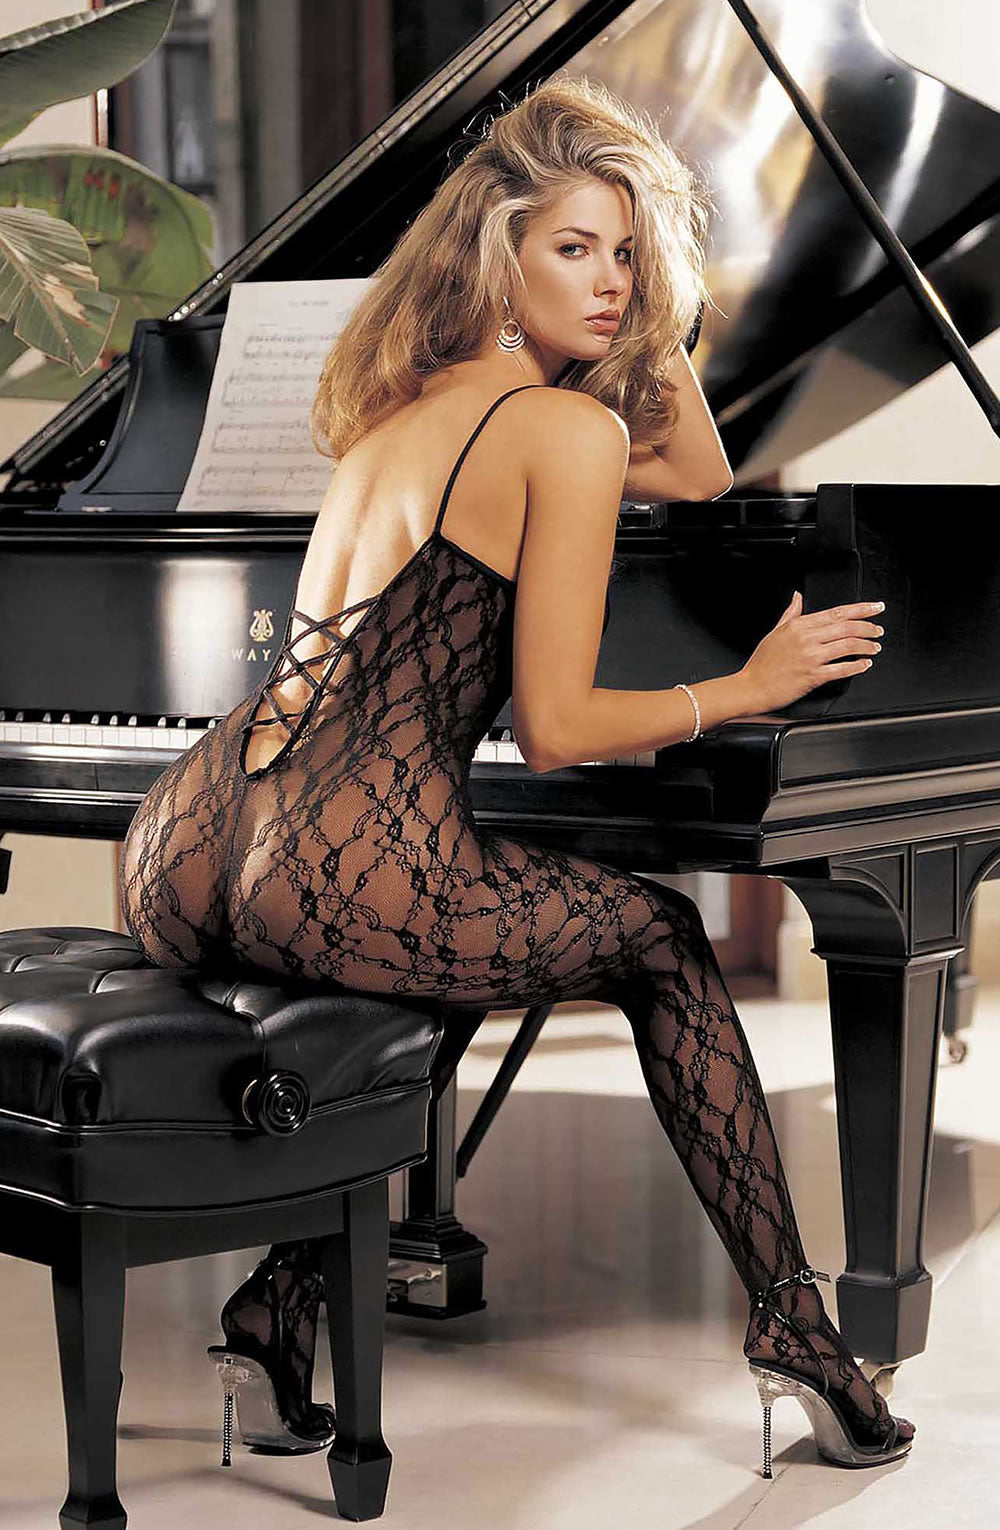 Black floral bodystockings